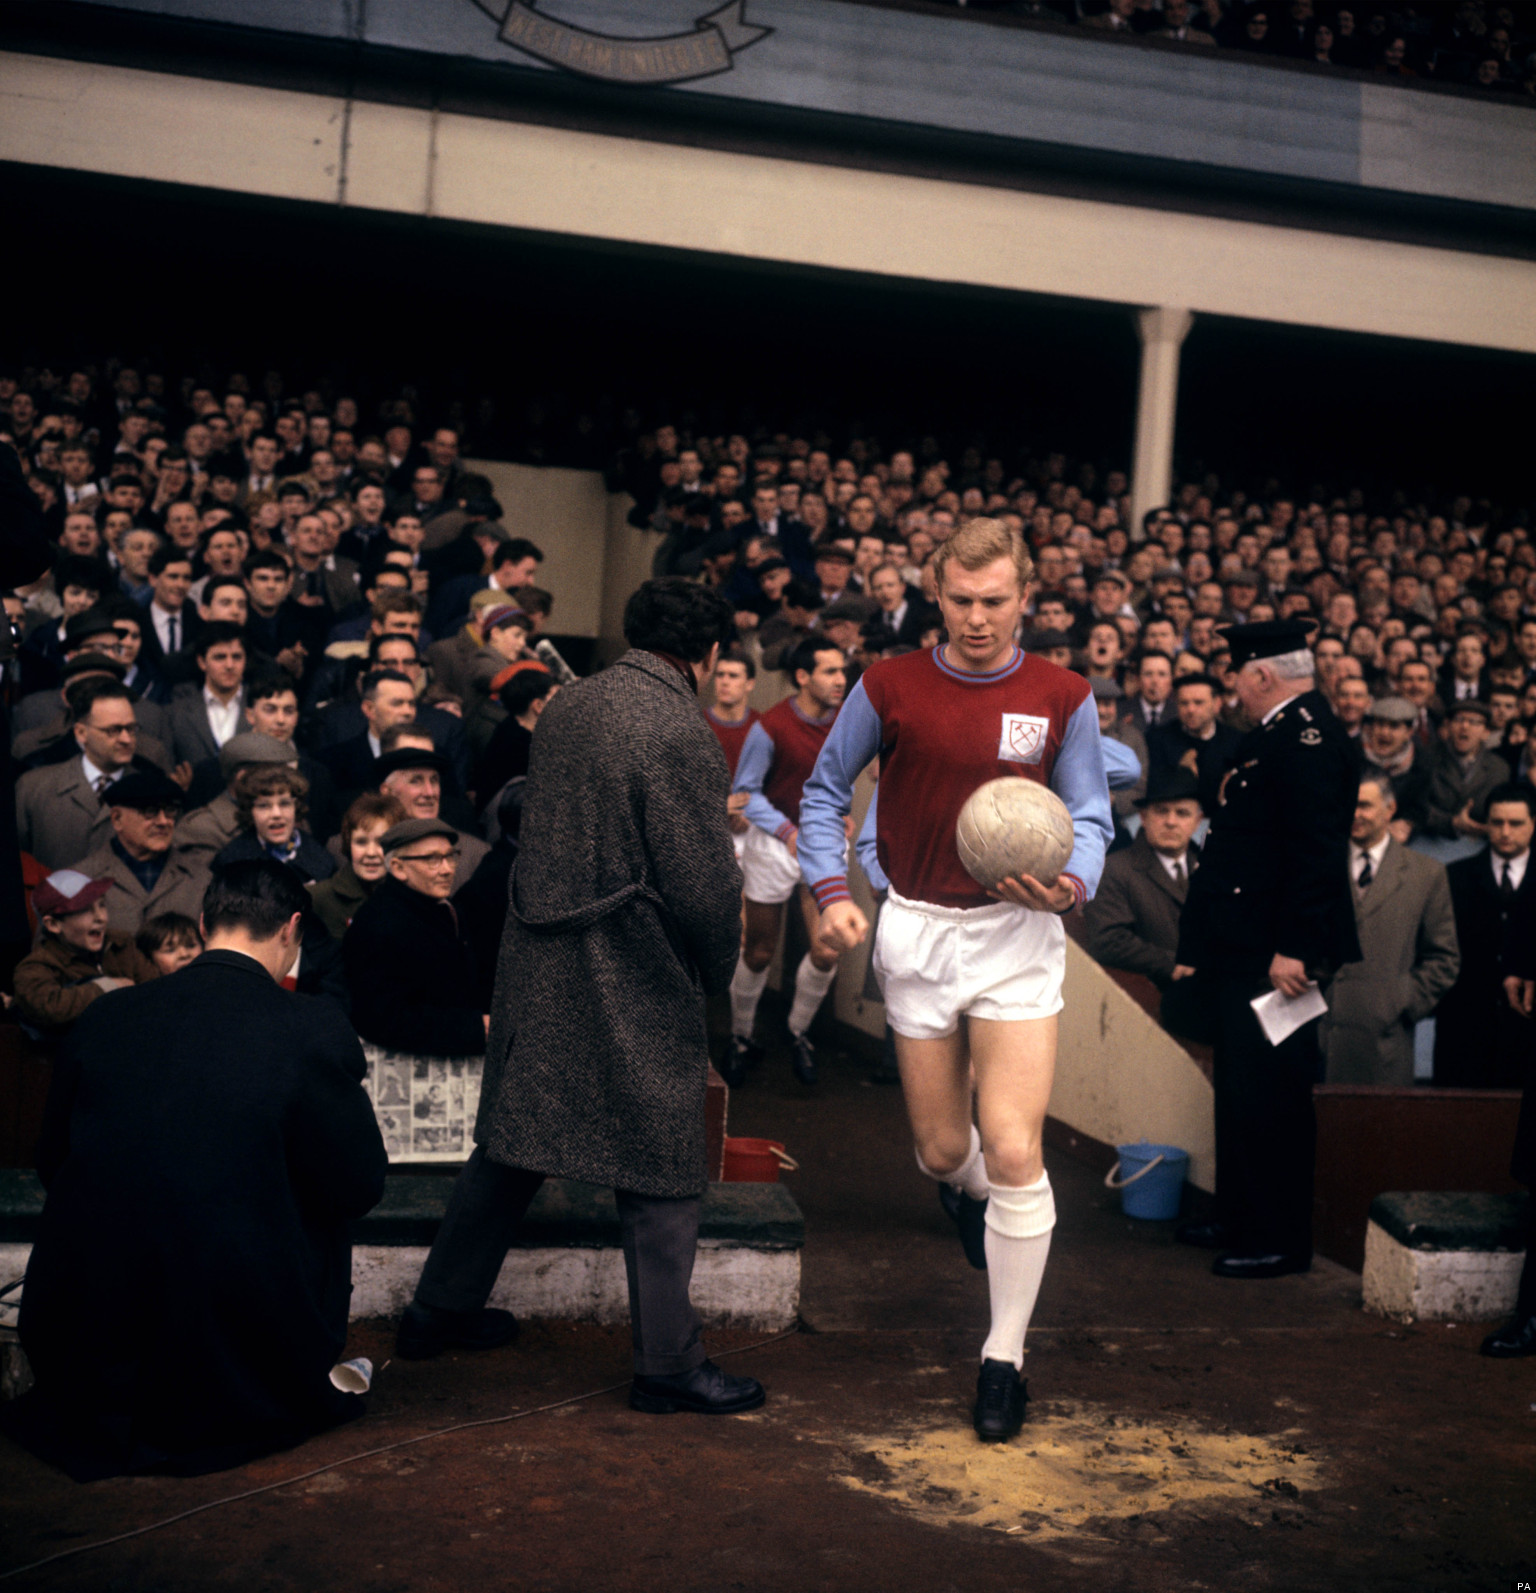 Bobby Moore is a legend at West Ham.